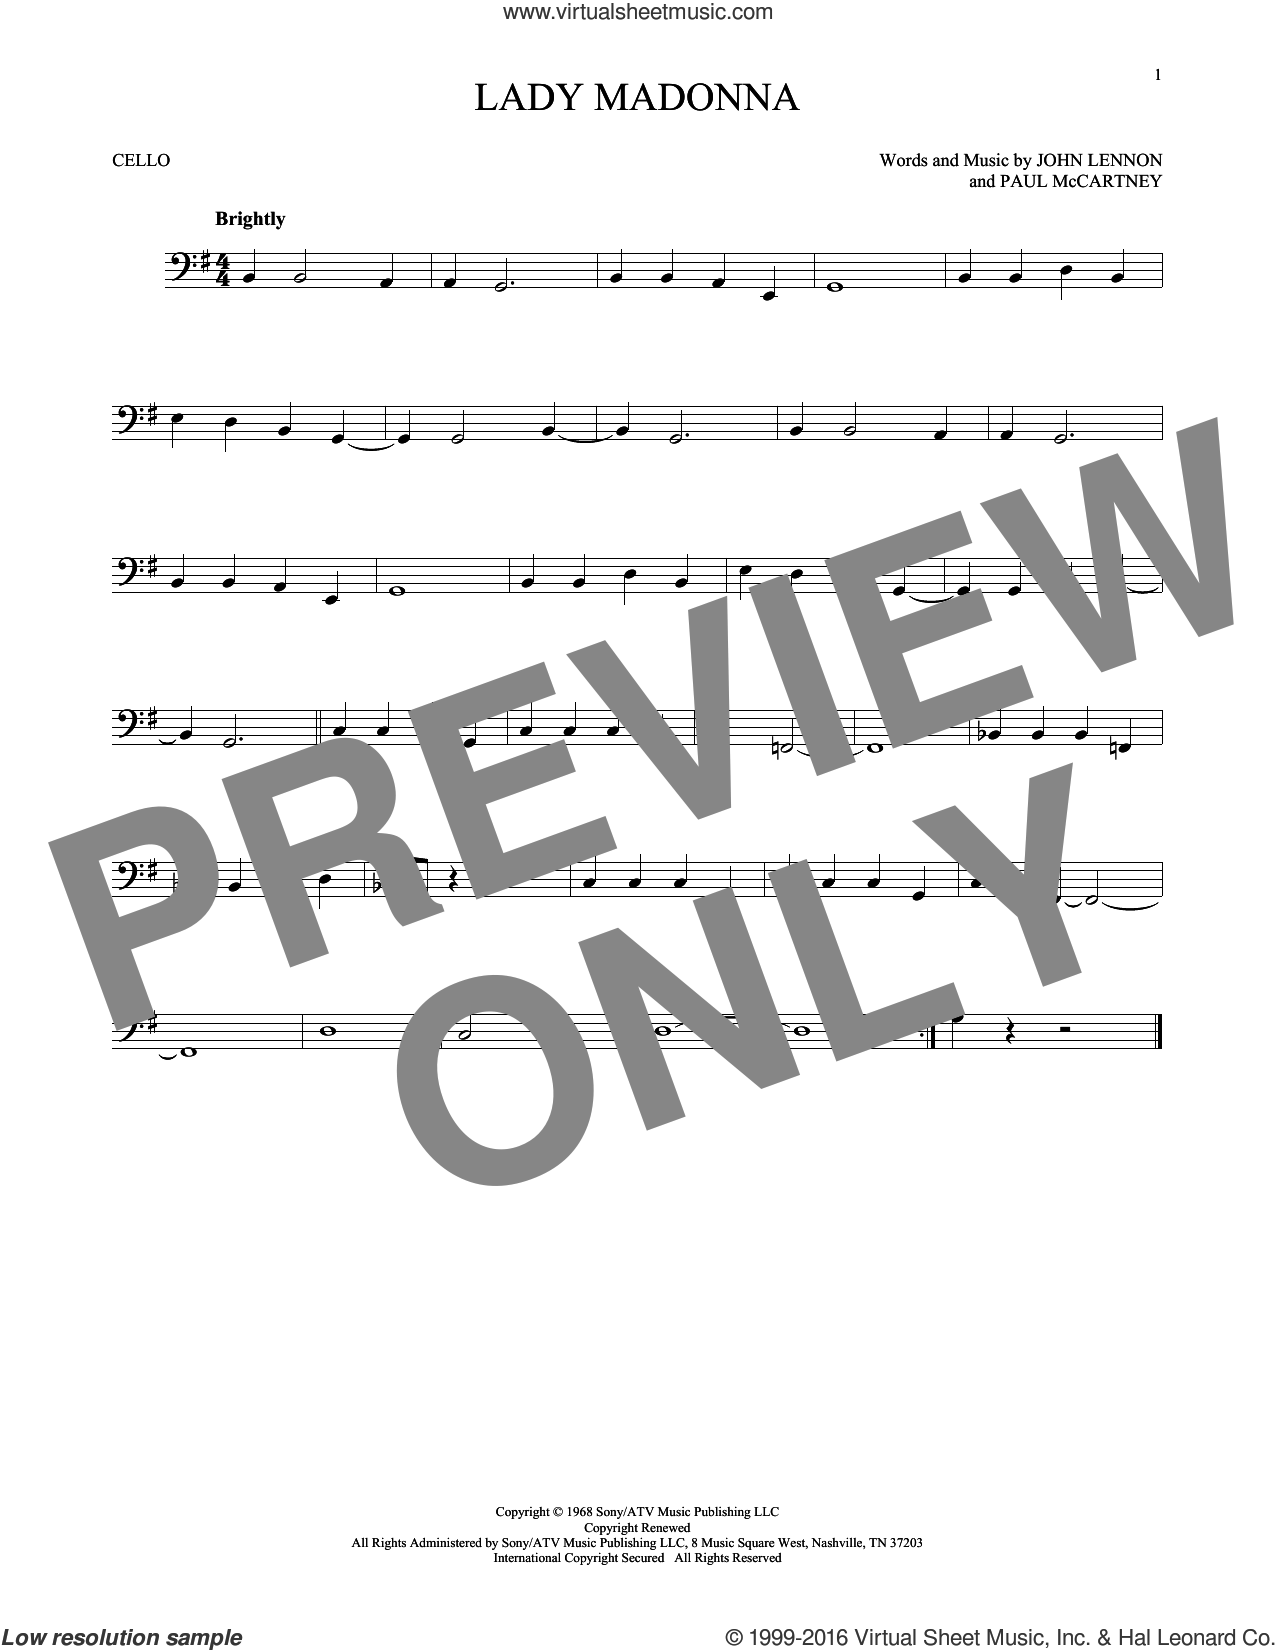 Lady Madonna sheet music for cello solo by The Beatles, John Lennon and Paul McCartney, intermediate skill level